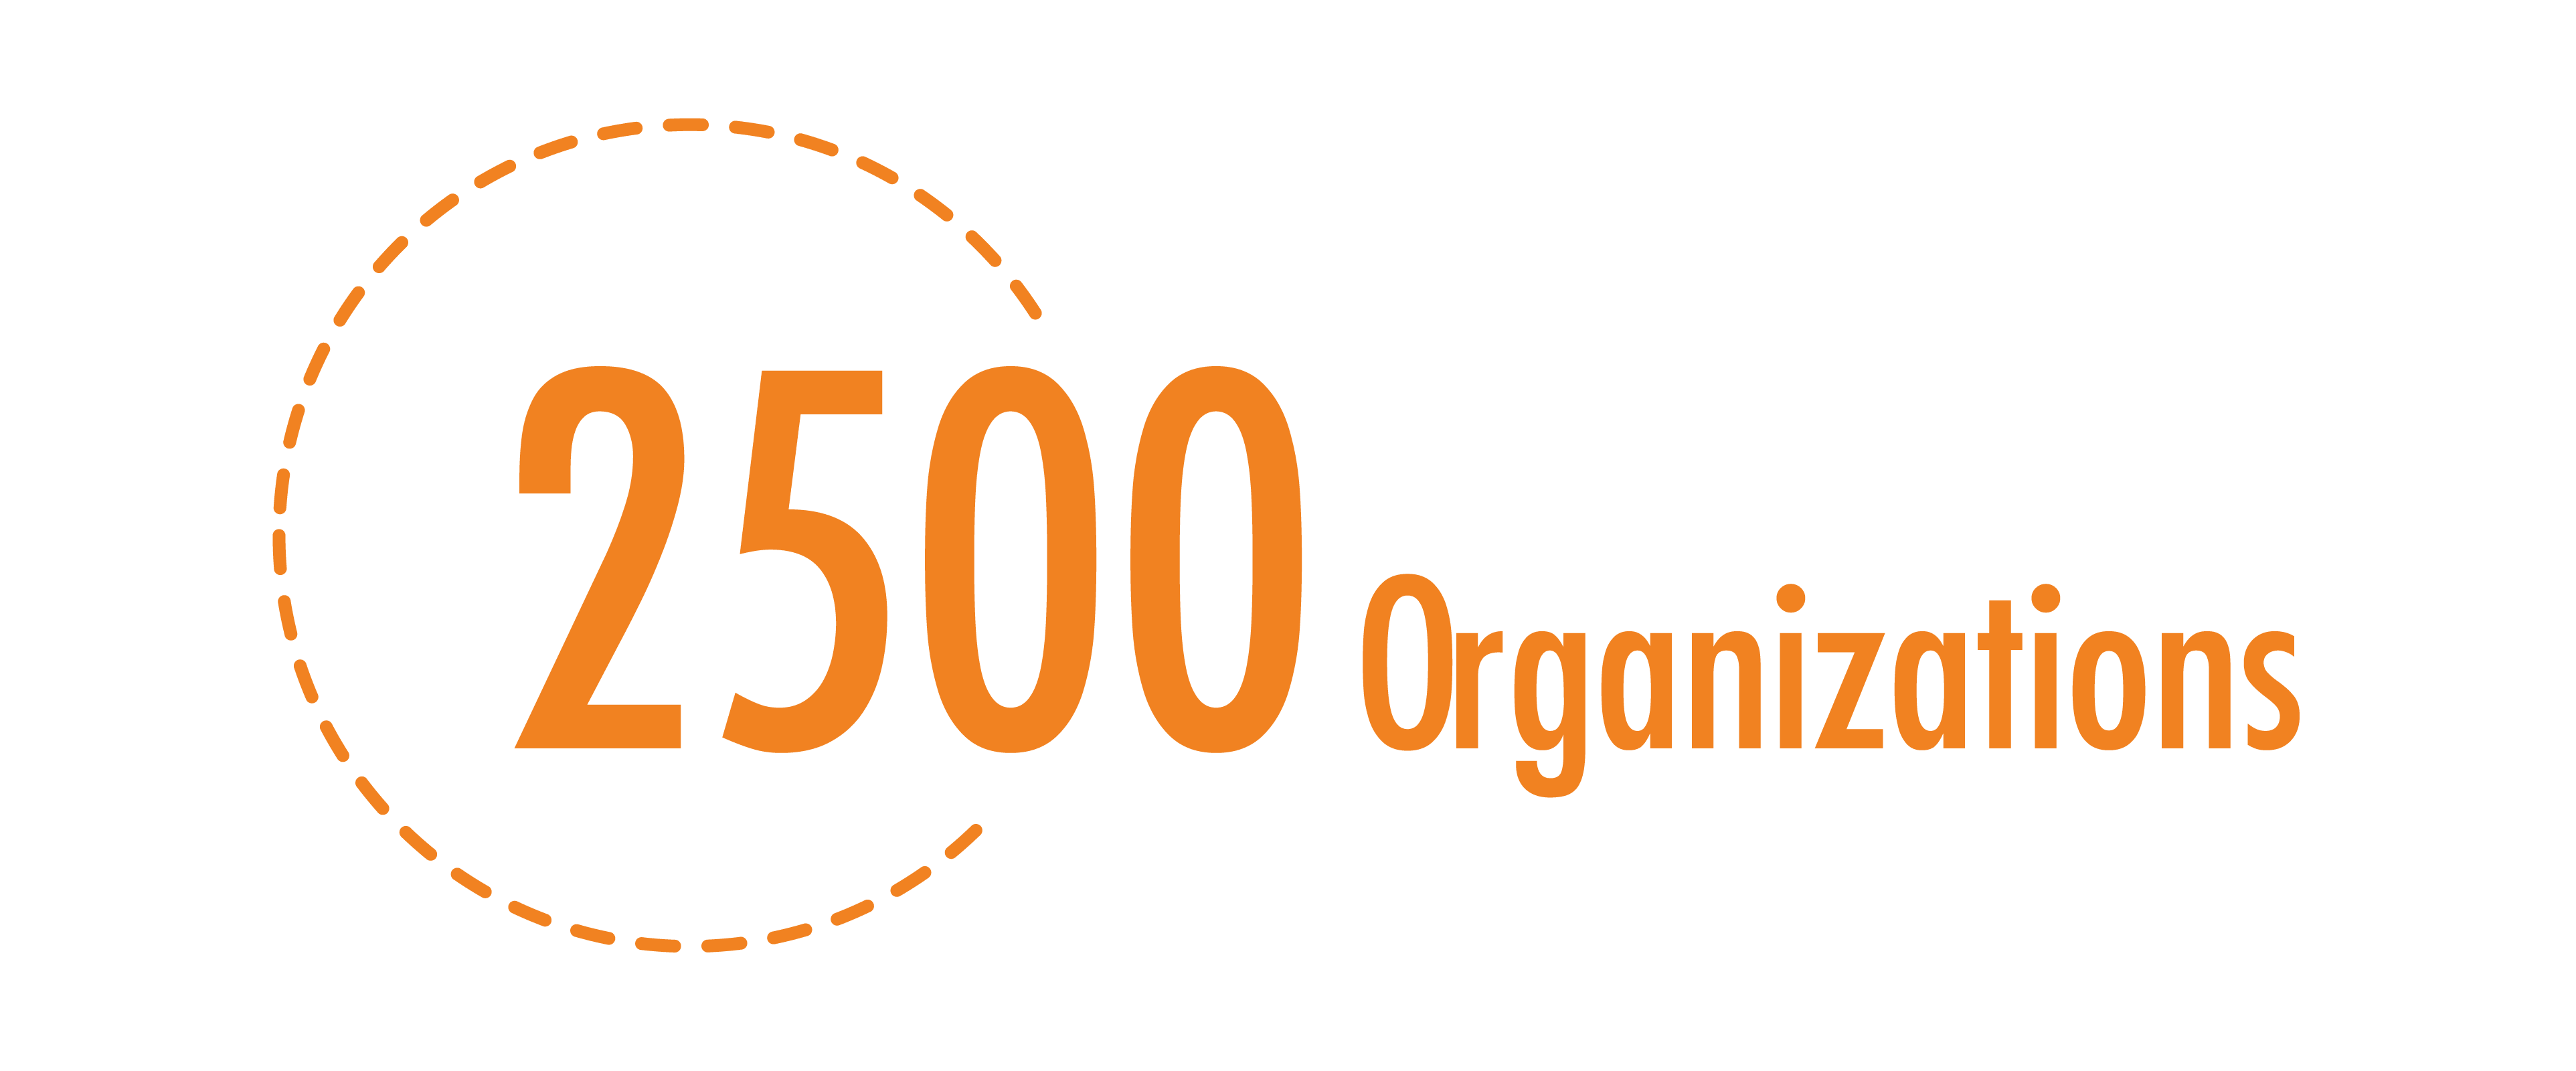 number of organizations 2500